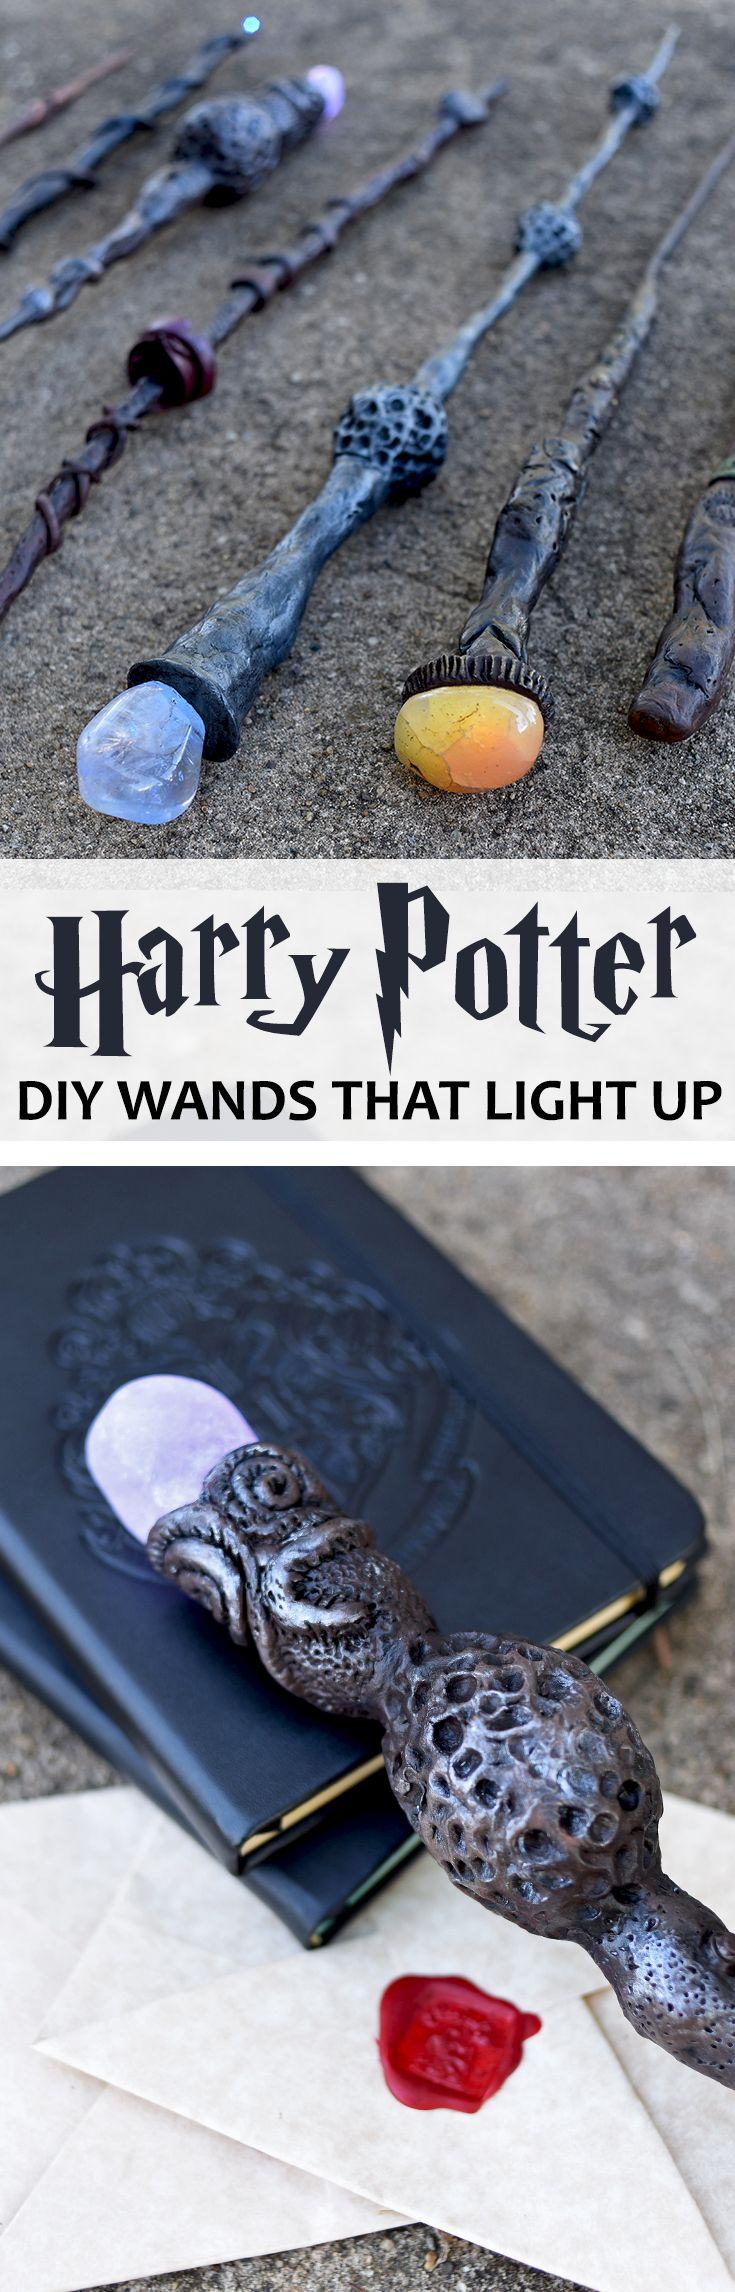 harry potter wand making tutorial